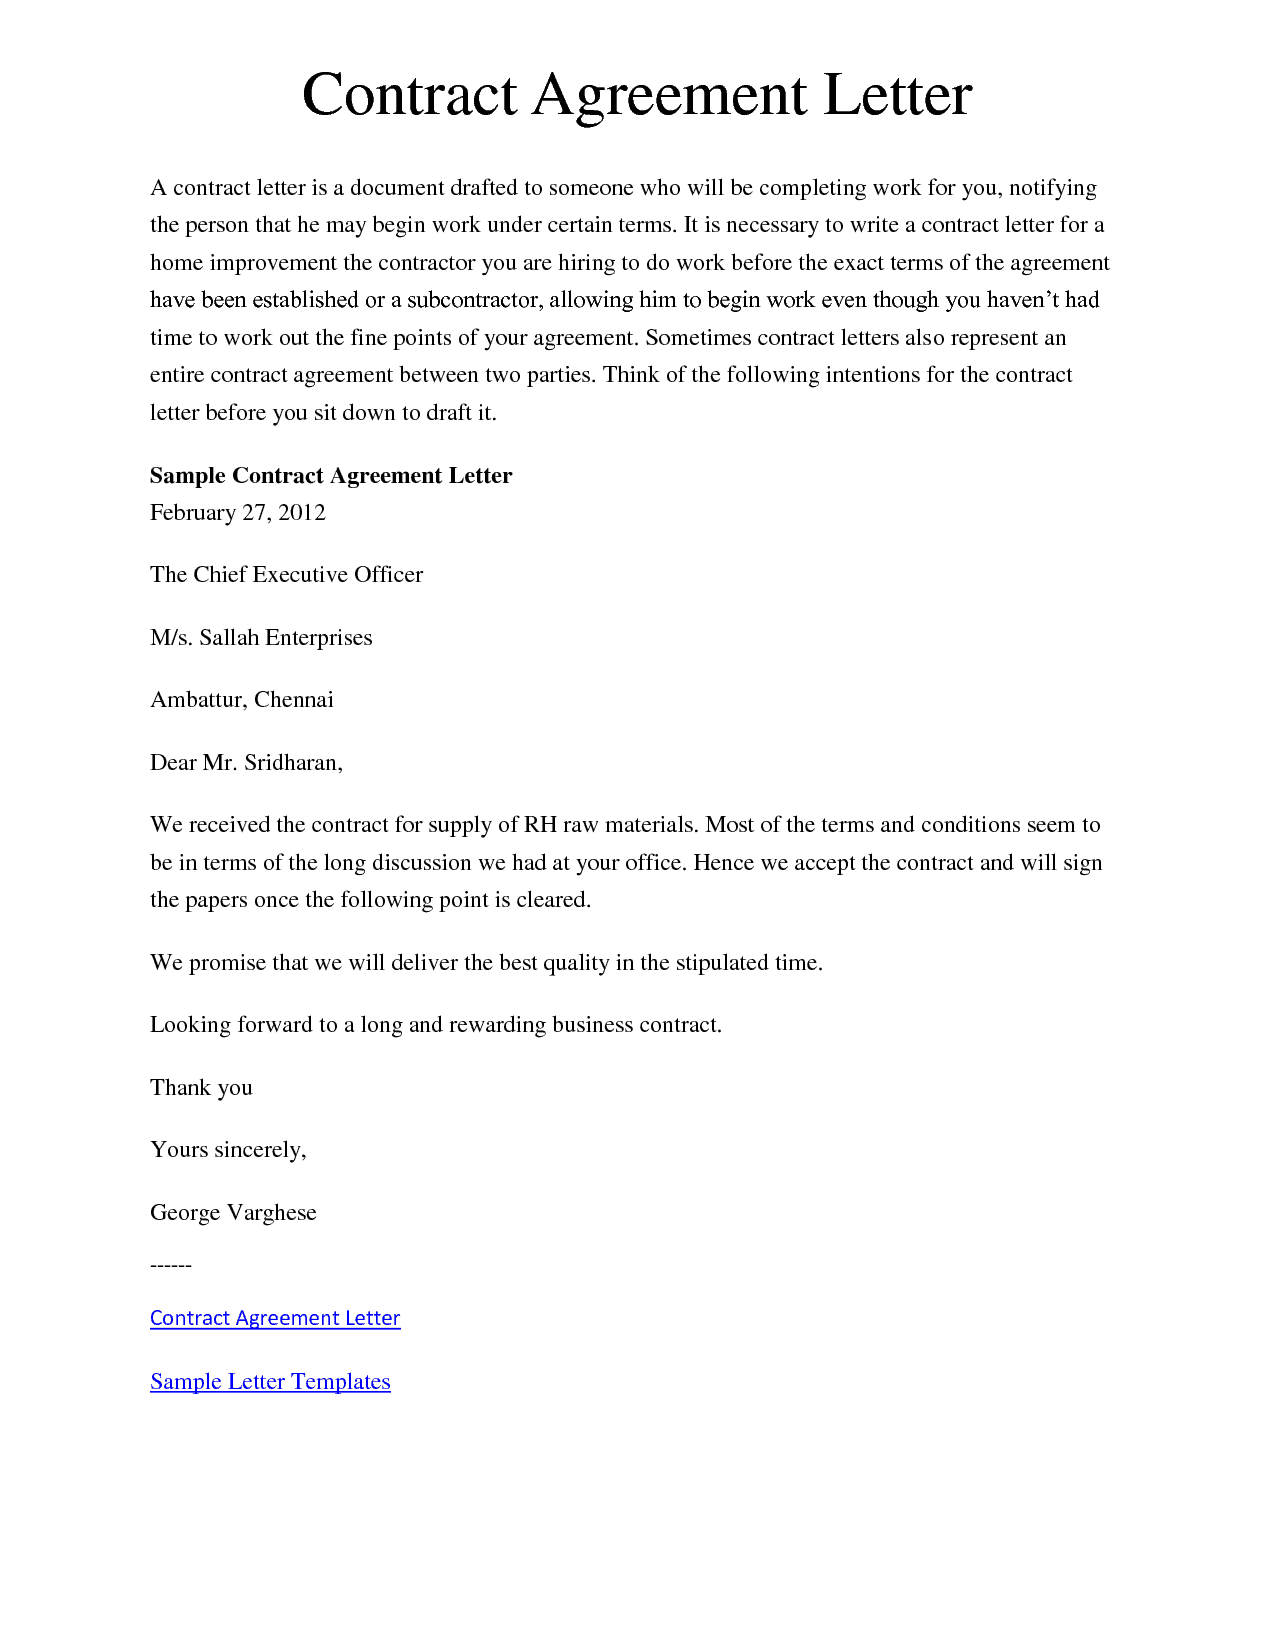 Agreement Letter Between Two People : agreement, letter, between, people, Sample, Letters, Agreement, Writing, Formats, Examples